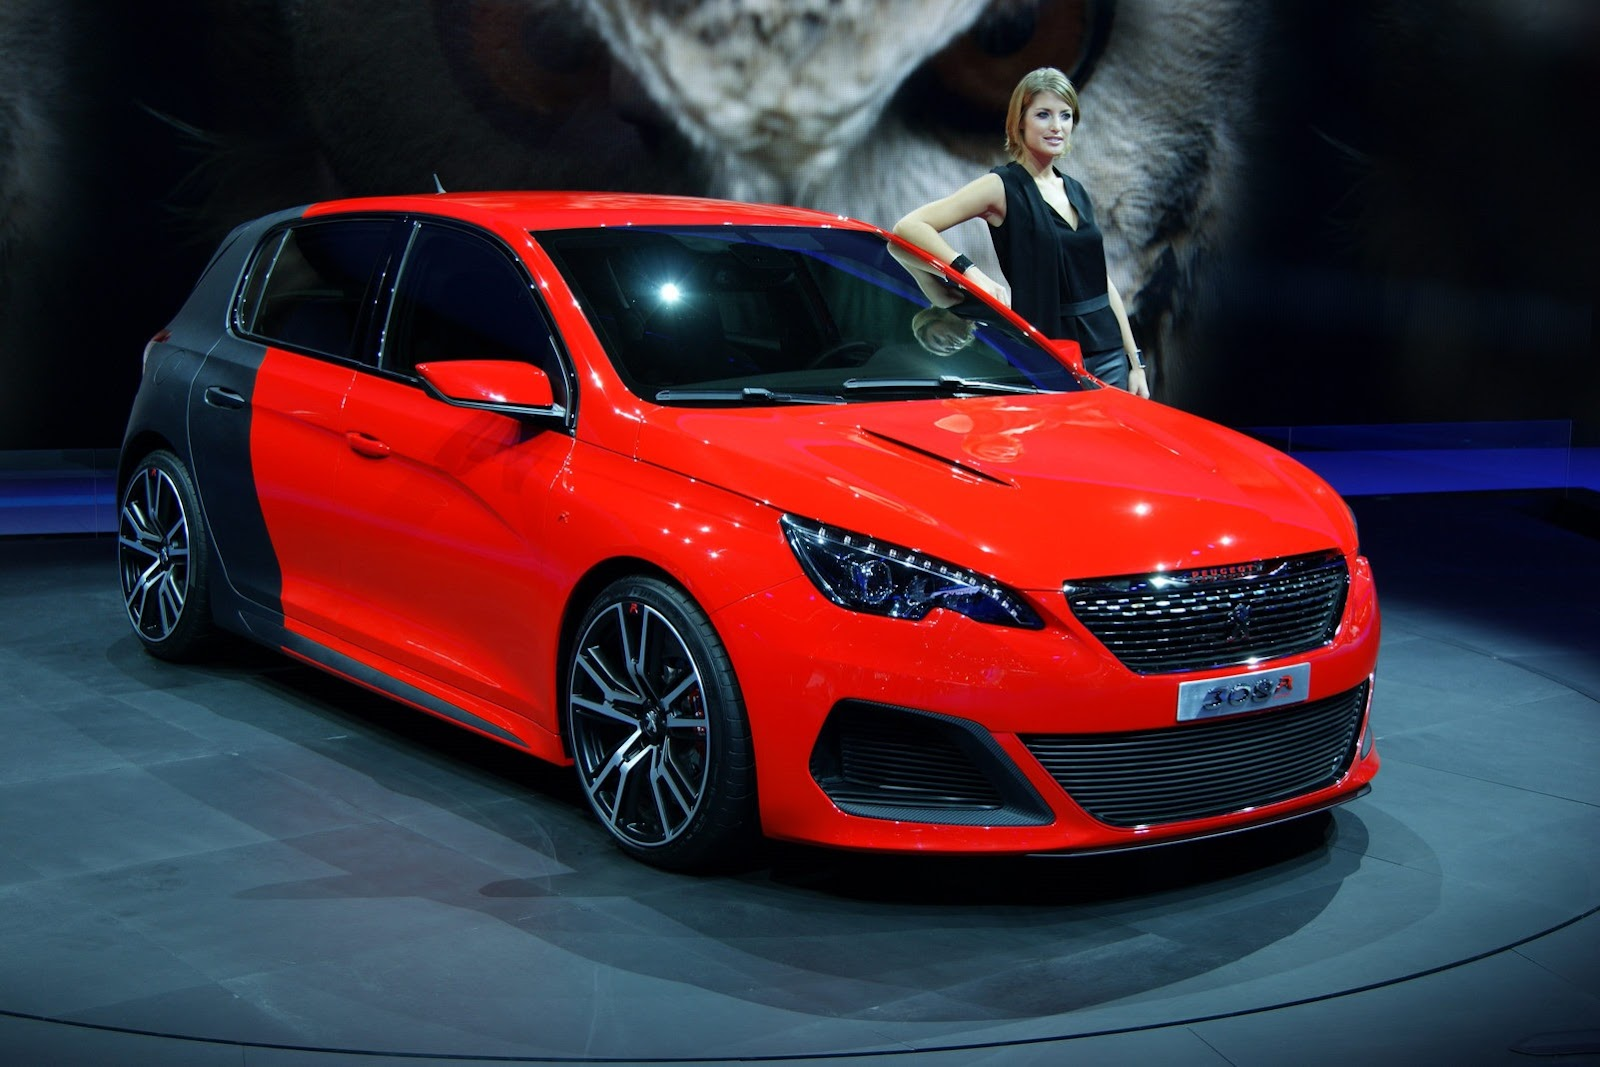 2014 peugeot 308 r konsept 266 hp g retiyor. Black Bedroom Furniture Sets. Home Design Ideas